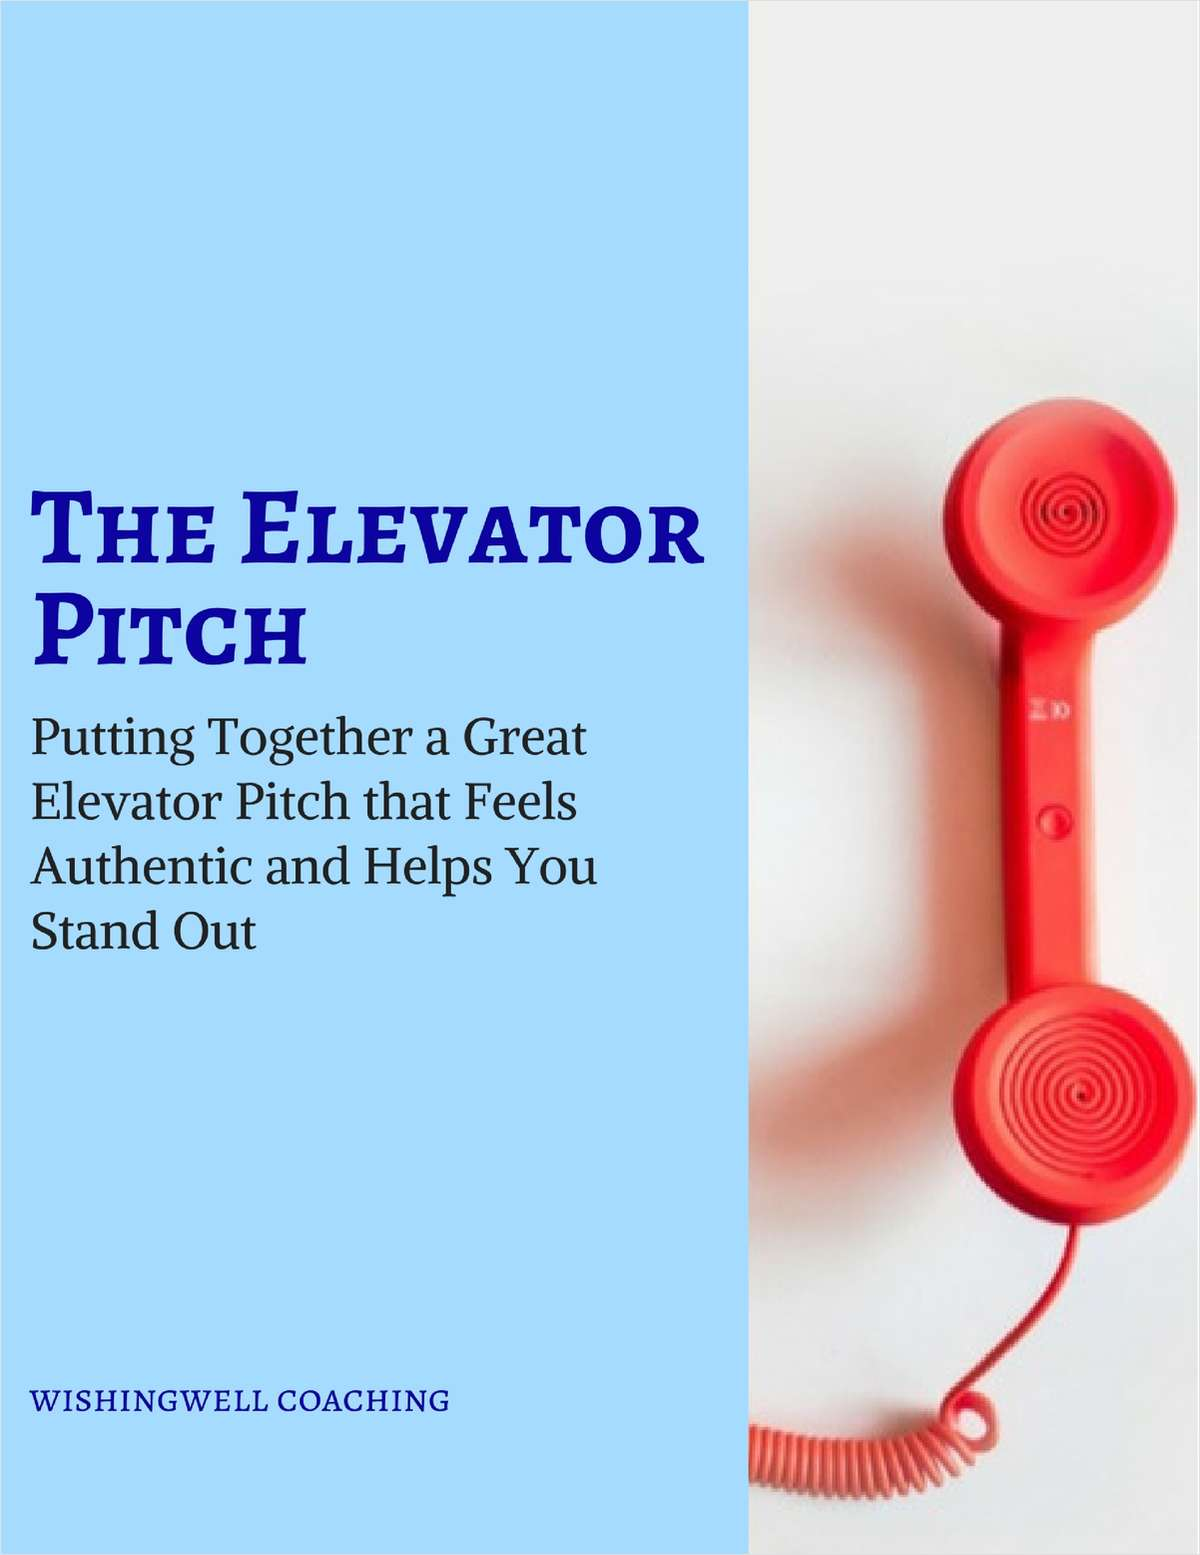 The Elevator Pitch - Putting Together a Great Elevator Pitch that Feels Authentic and Helps You Stand Out